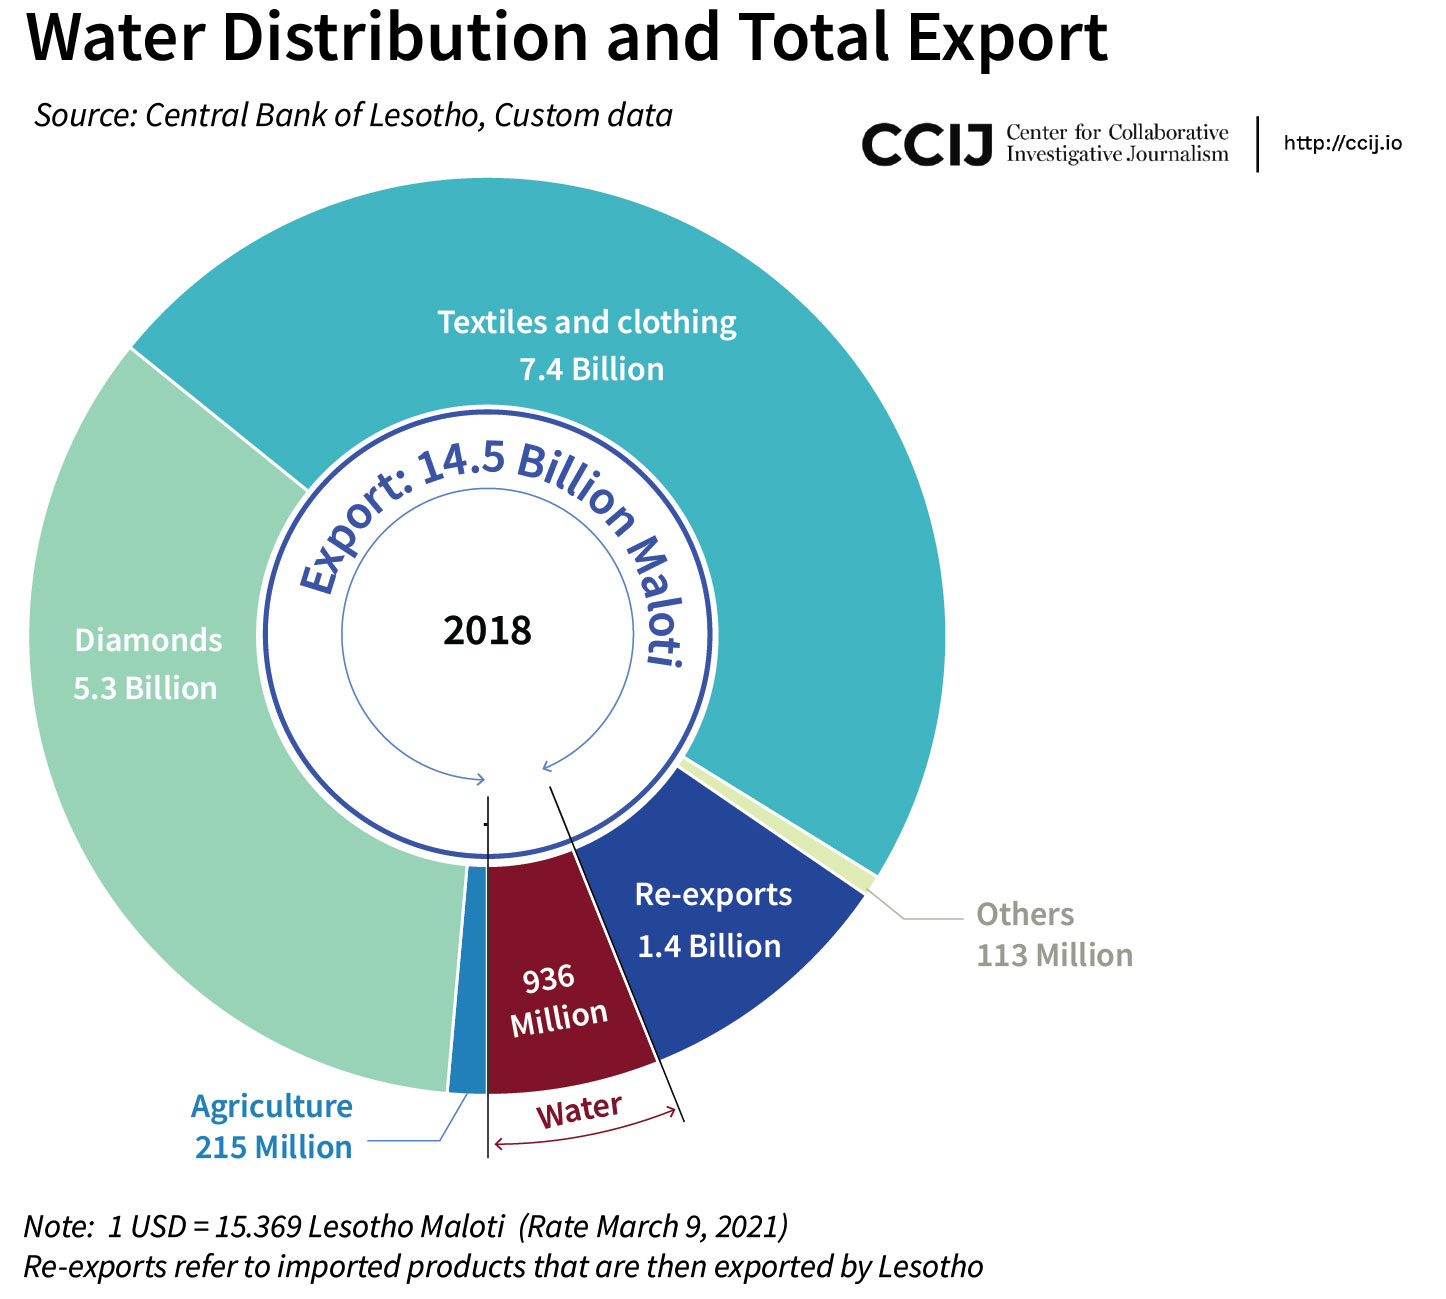 Pie chart comparing water distribution and total exports for Lesotho